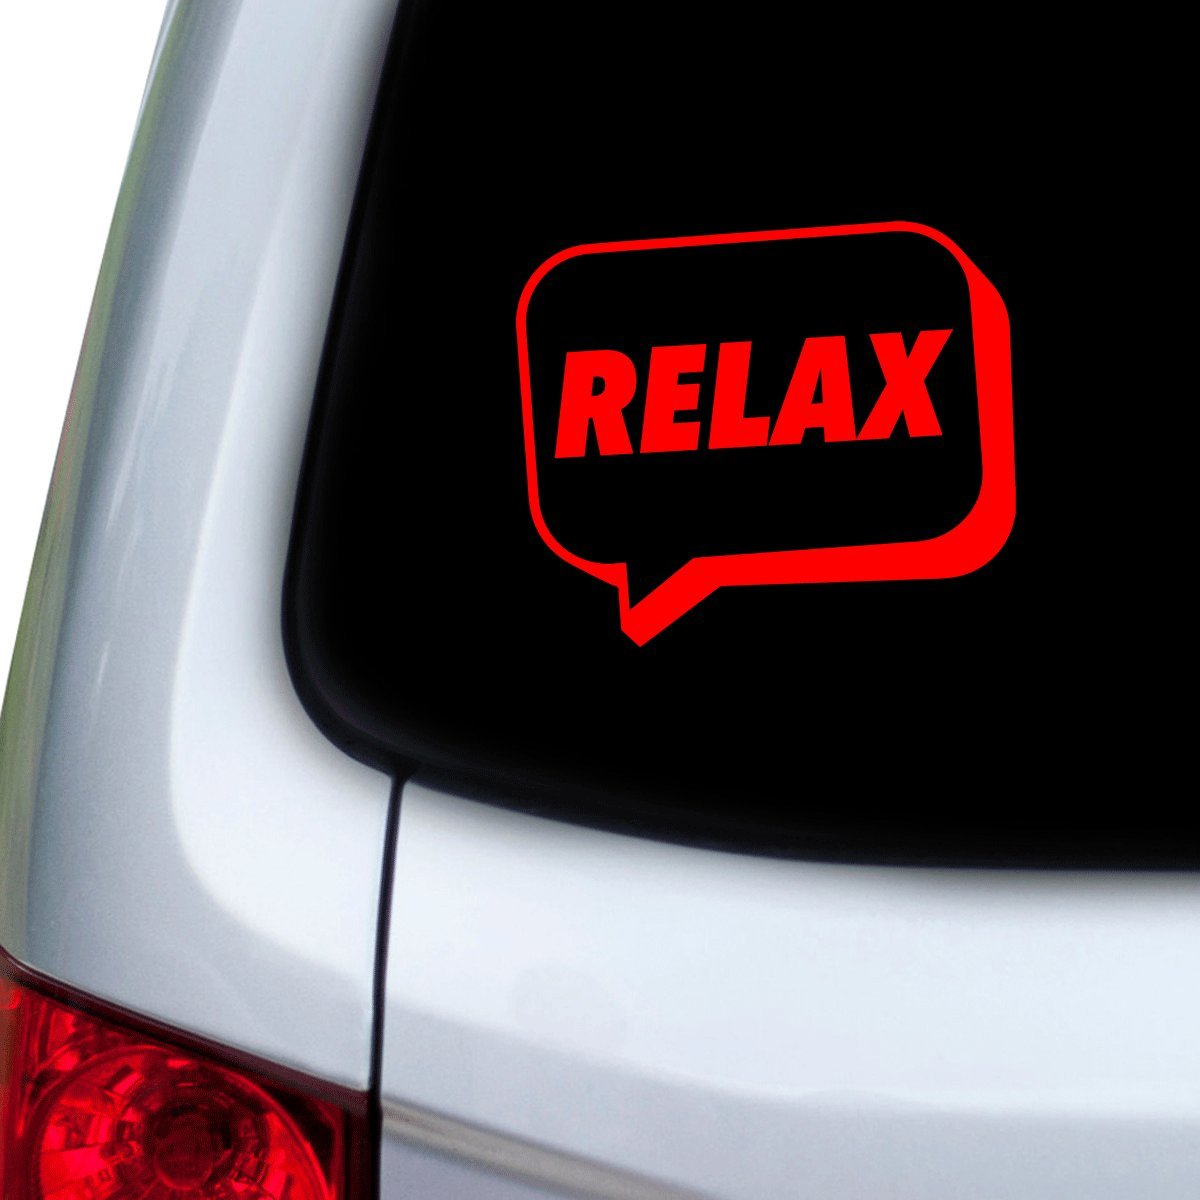 Red Hoods StickAny Car and Auto Decal Series Relax Speech Bubble Sticker for Windows Doors